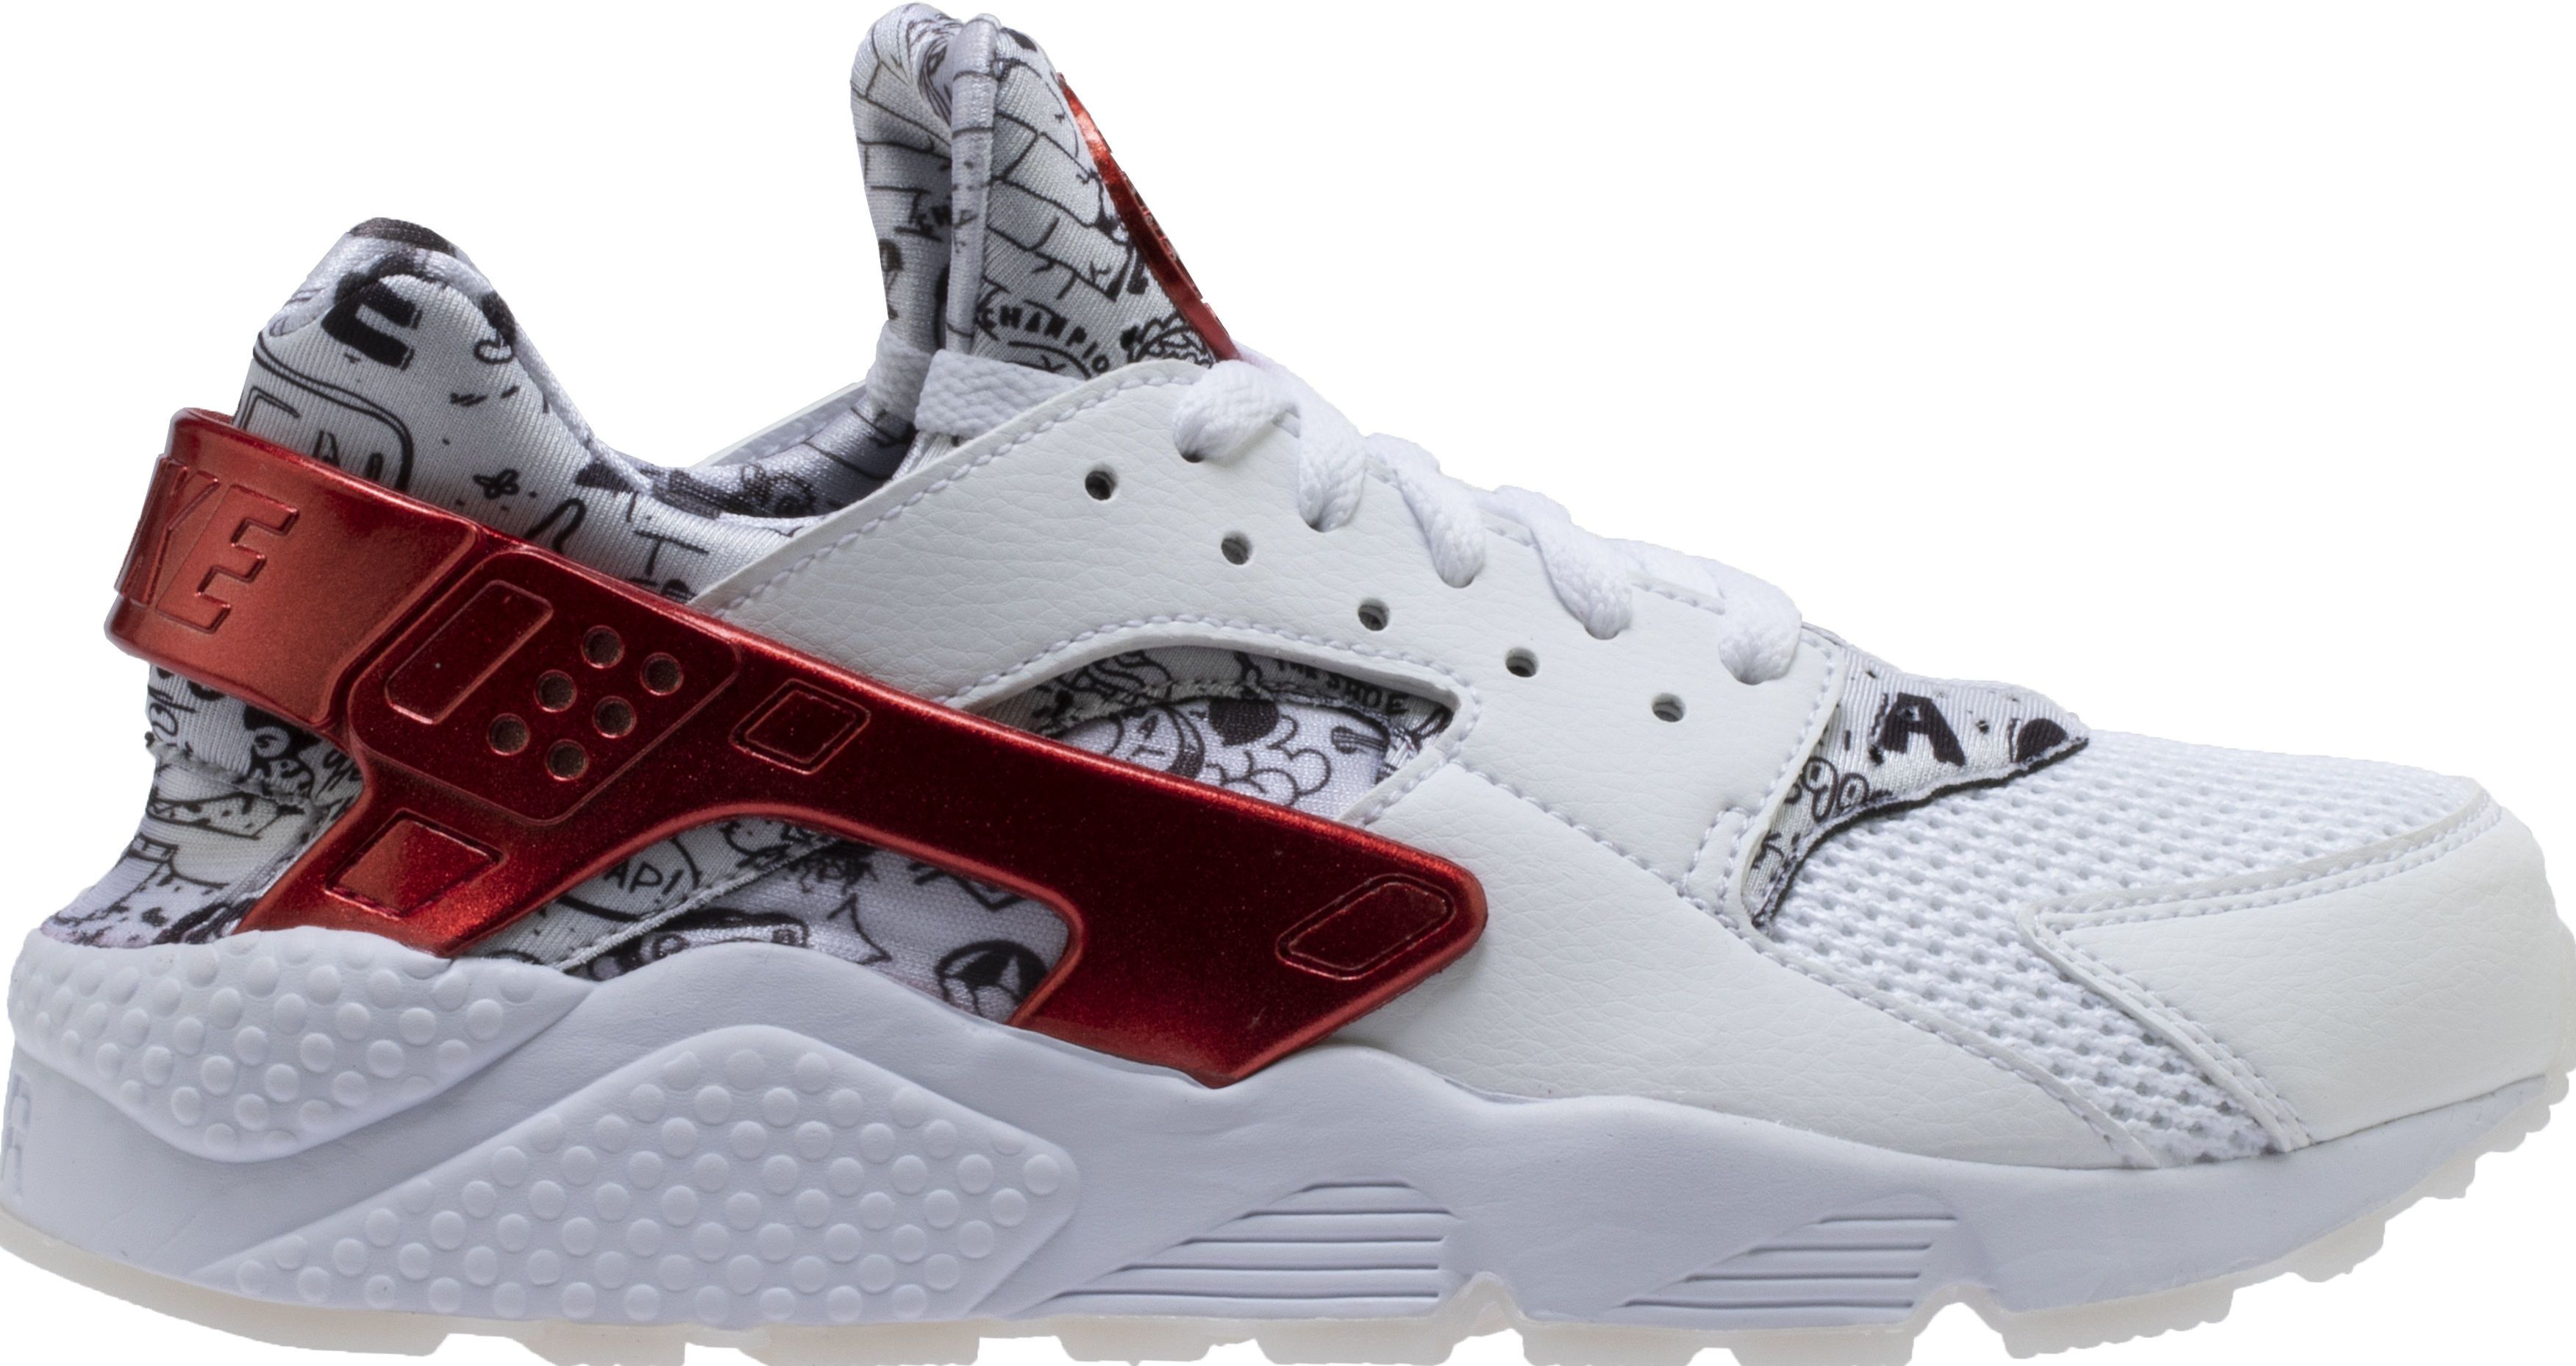 Shoe Palace Is Dropping Another Exclusive Huarache | Nike ...